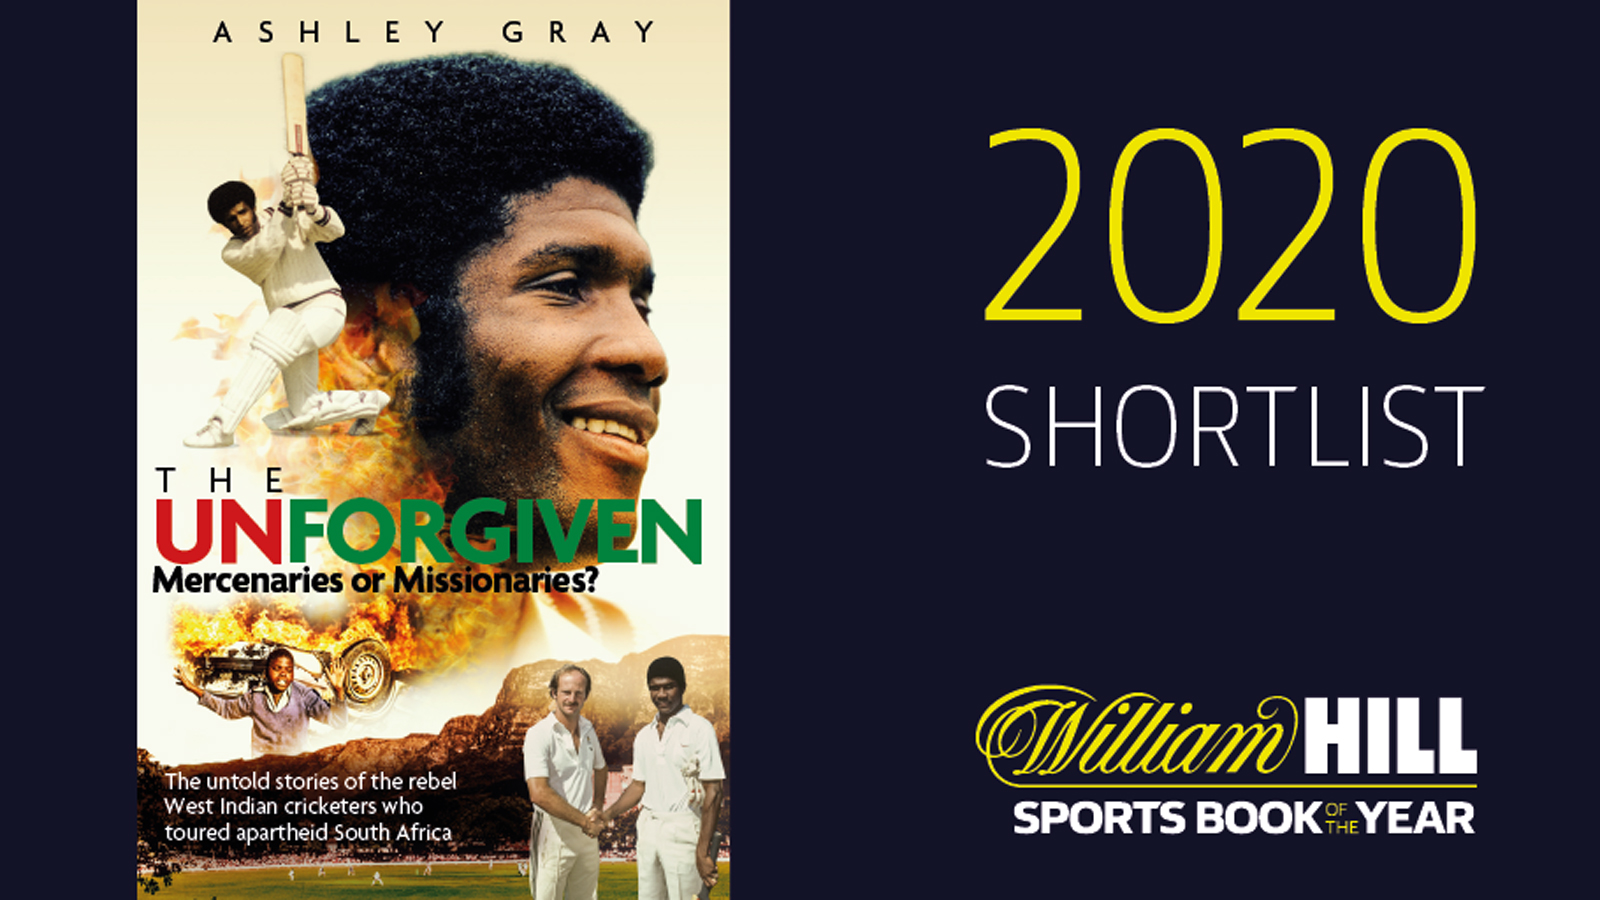 UNFORGIVEN ON WILLIAM HILL SHORTLIST